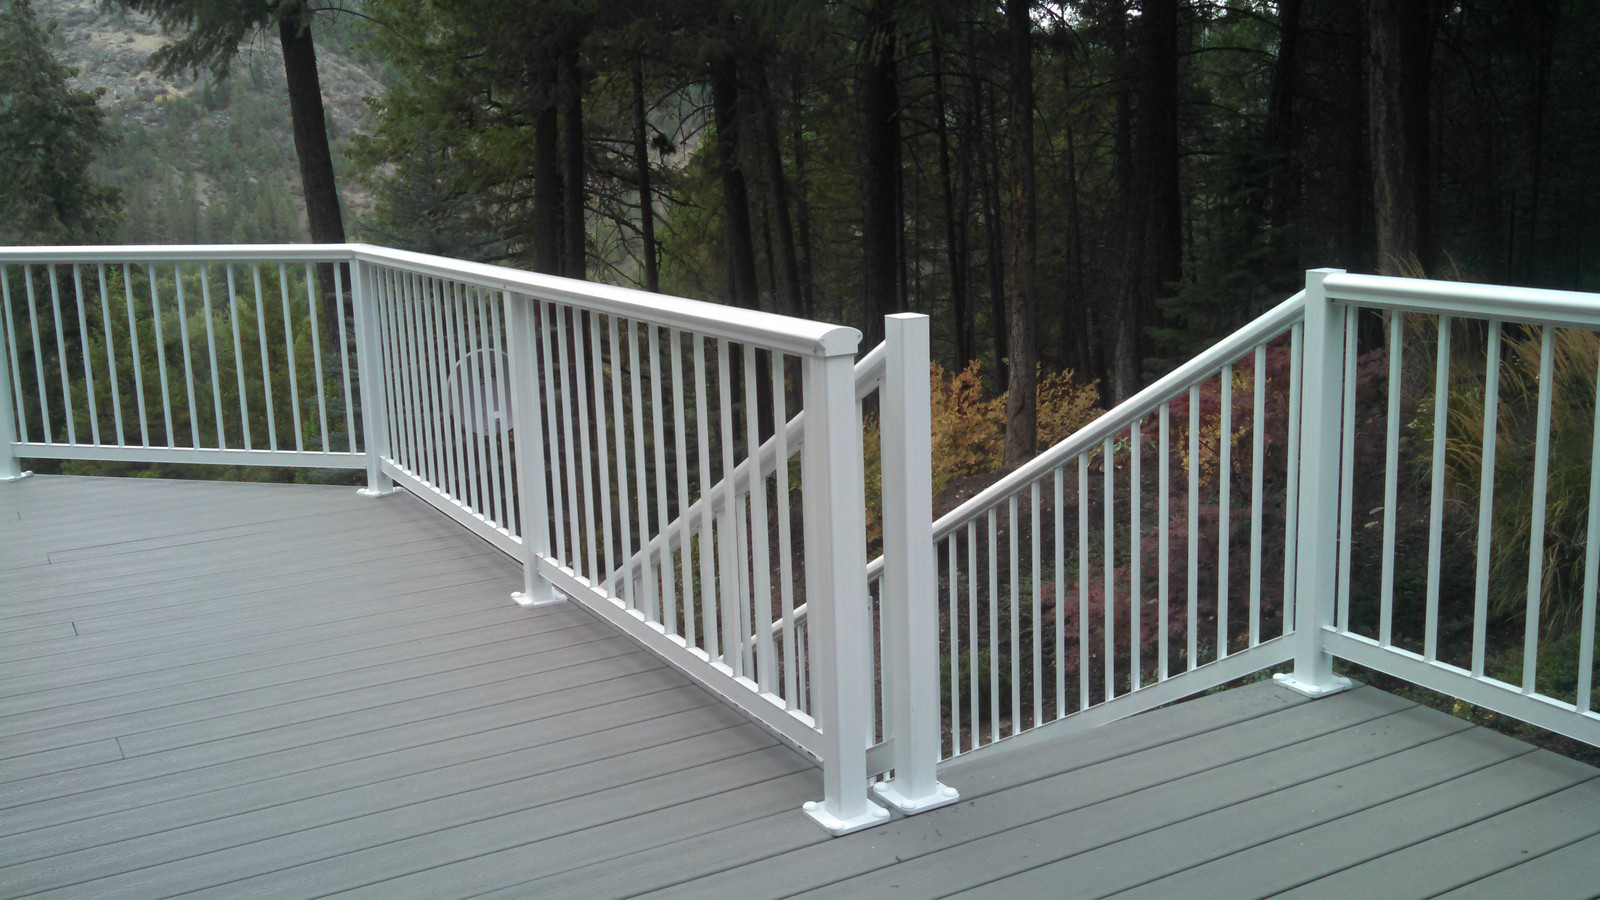 Elliptical Picket Railing Around Deck, Round Top Down Stairs